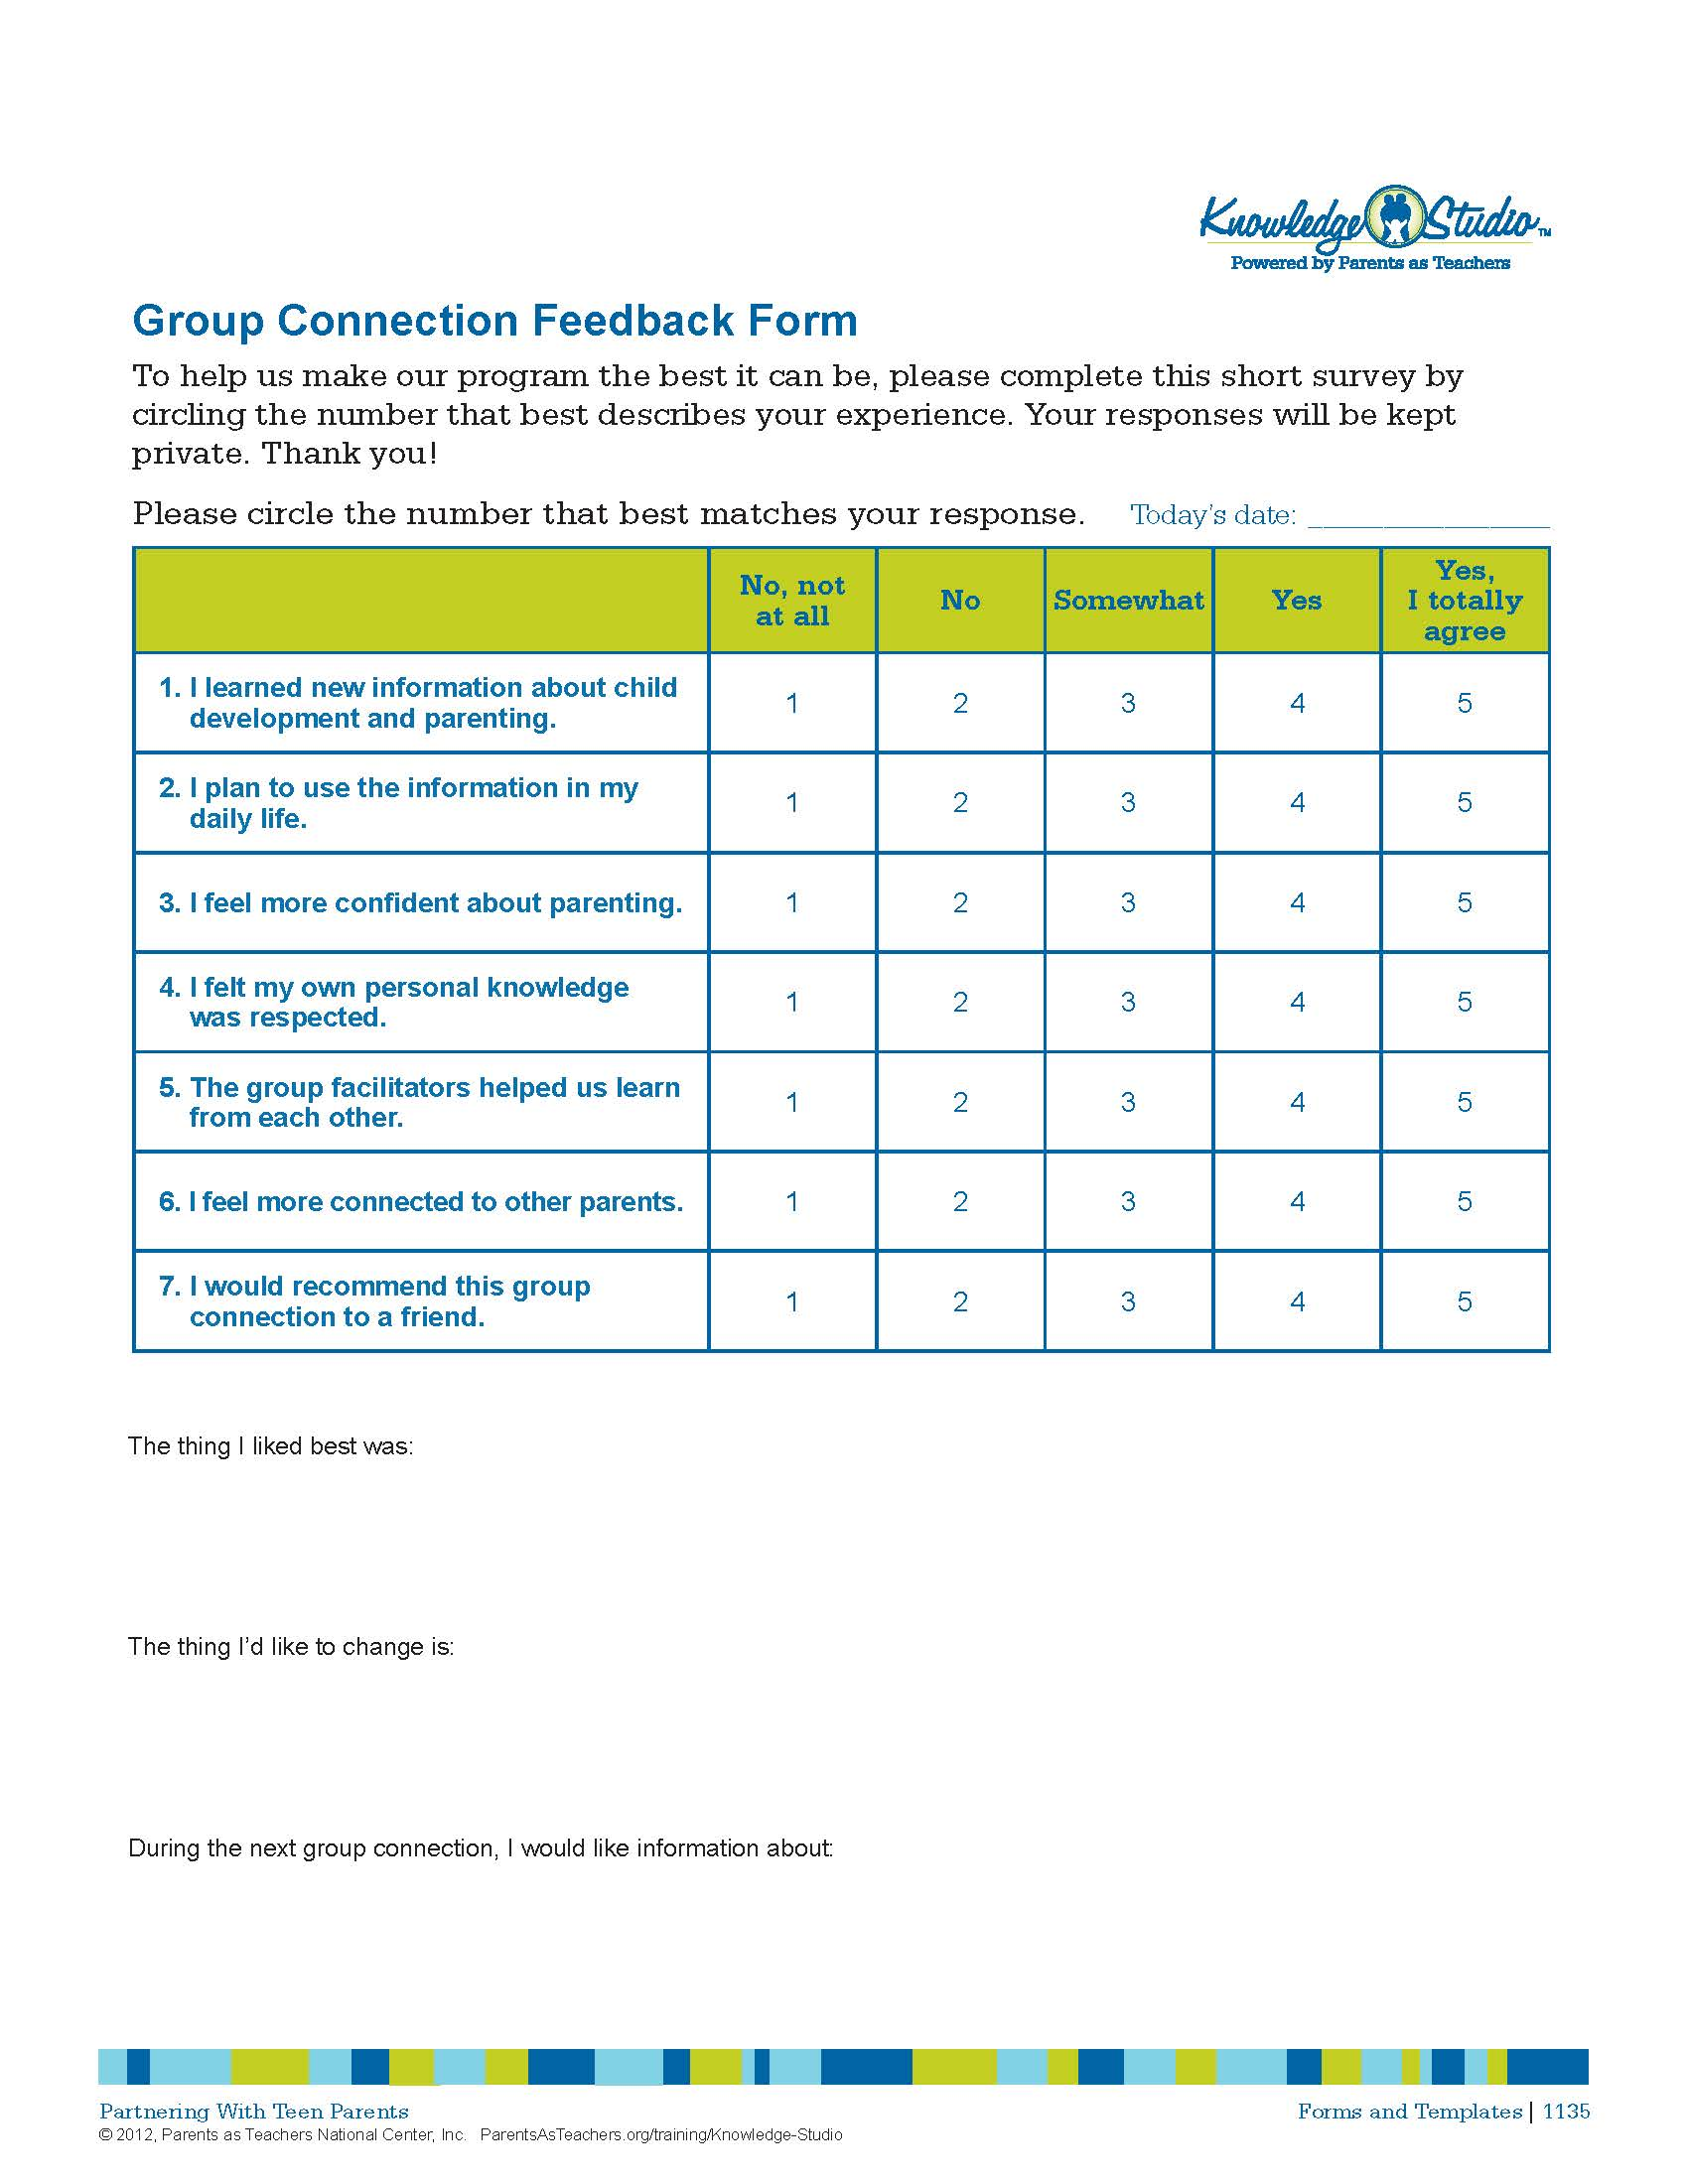 Group Connection Feedback Form